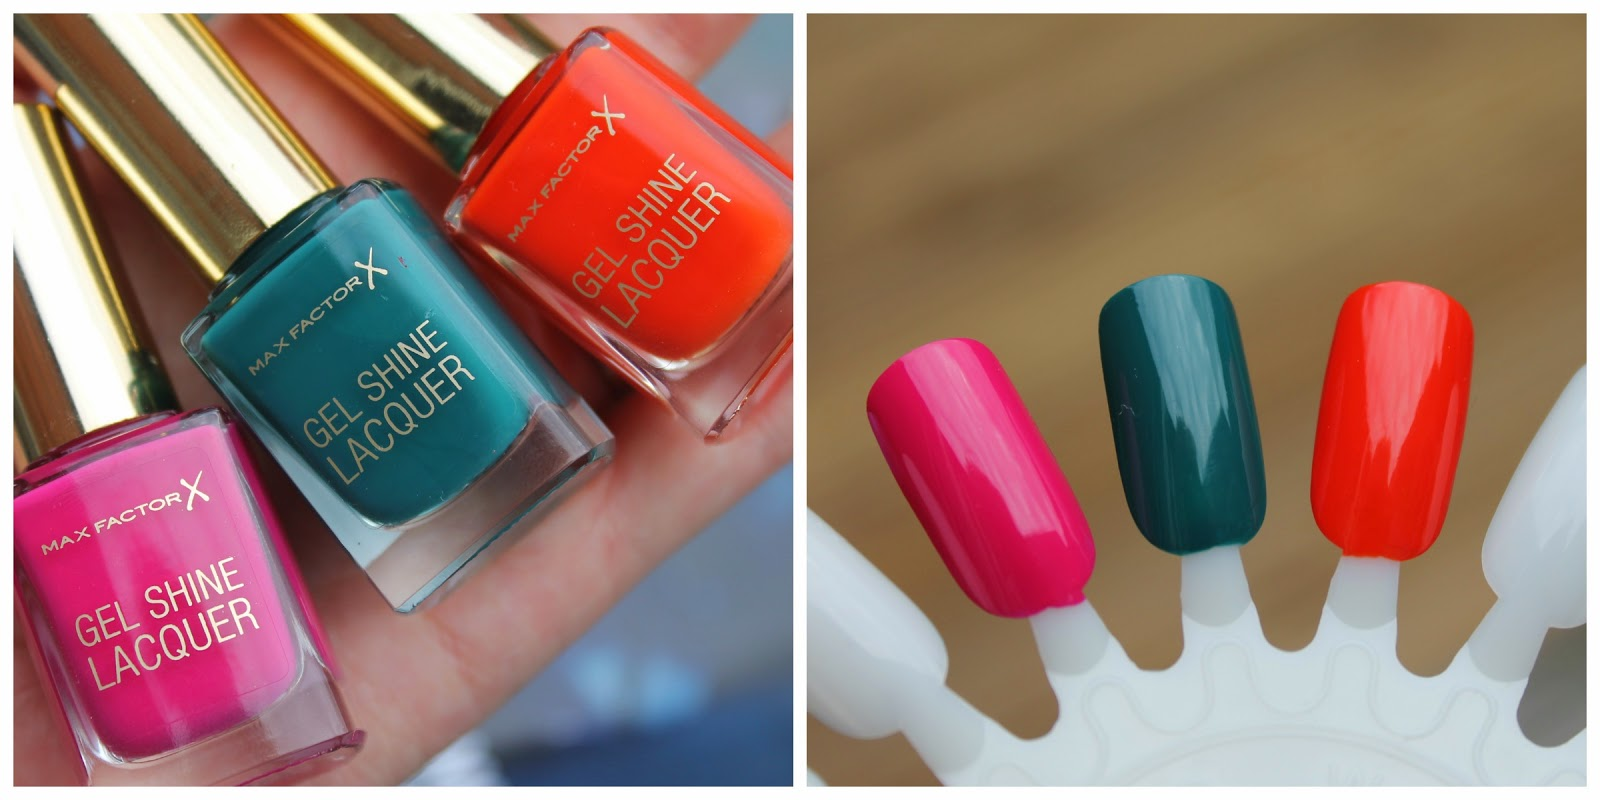 Max Factor Gel Shine Lacquers